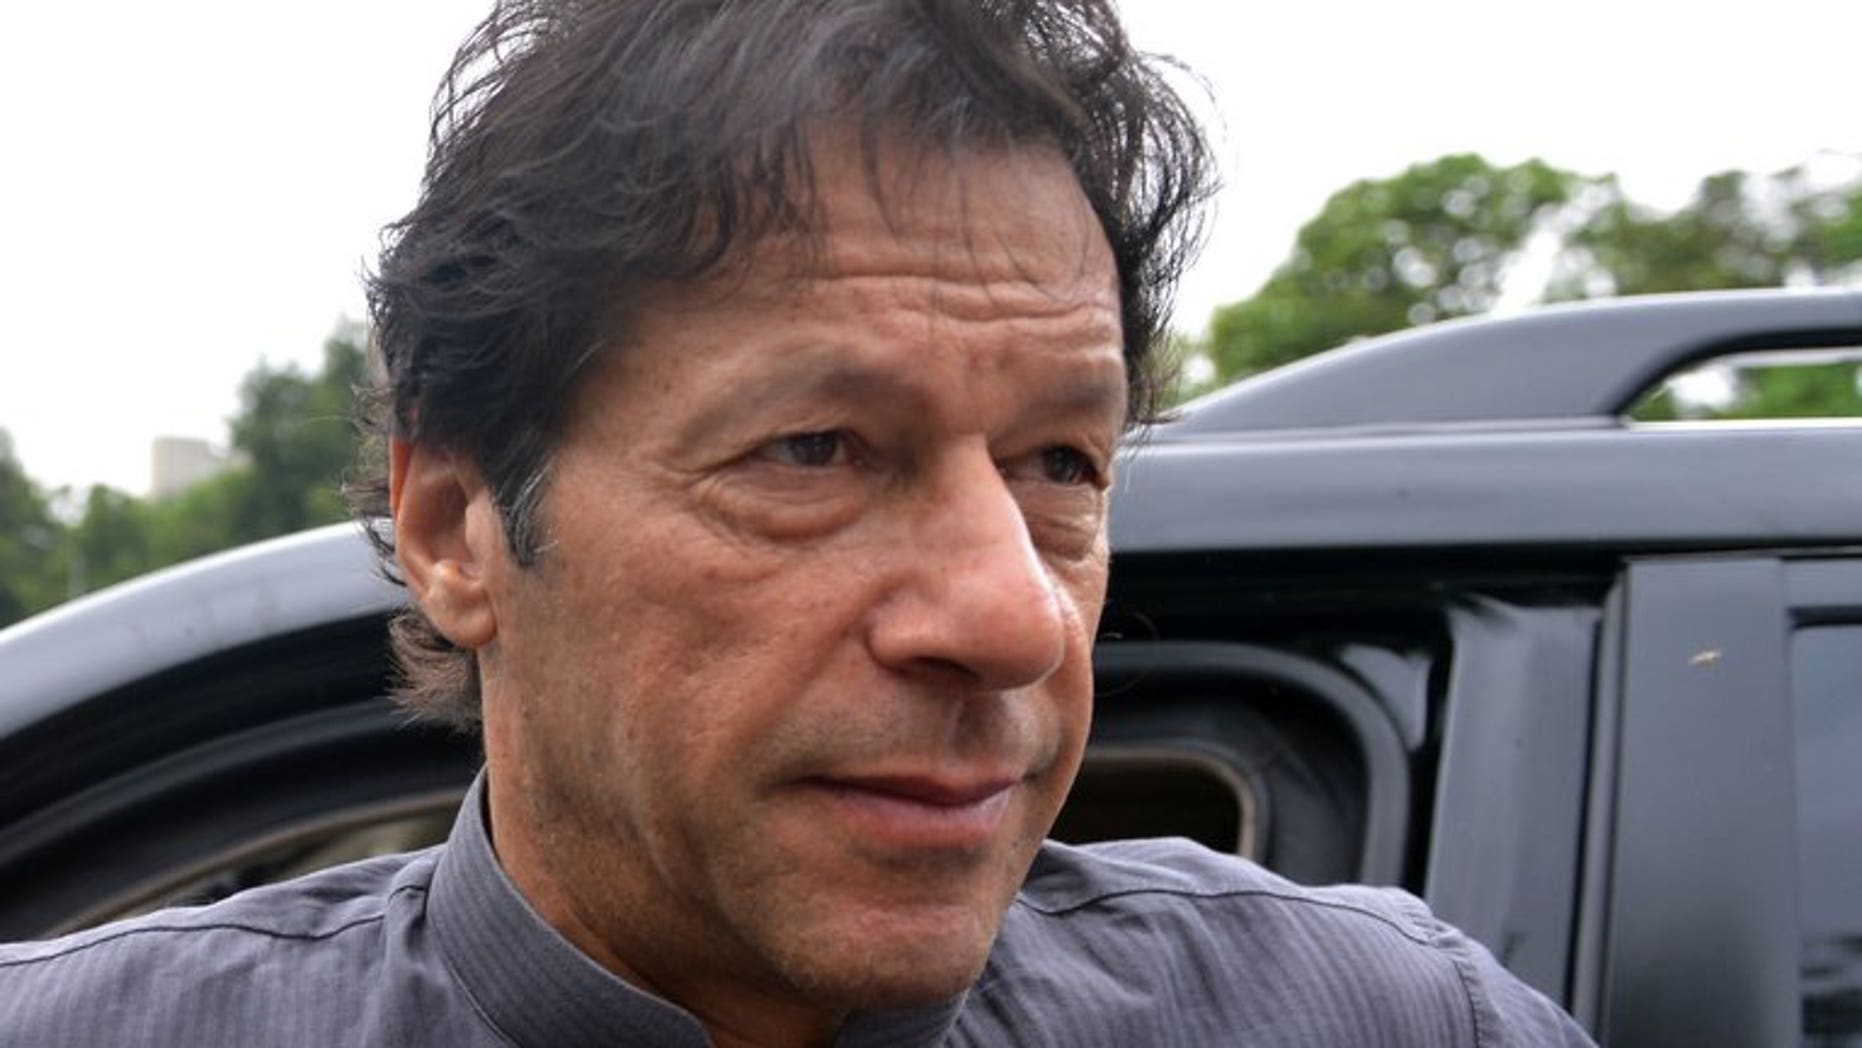 Pakistani politician Imran Khan arrives to appear before the Supreme Court in Islamabad, on August 2, 2013. The court has ordered the cricketer-turned-politician to respond in more detail over allegations that he committed contempt by making derogatory remarks against the judges.